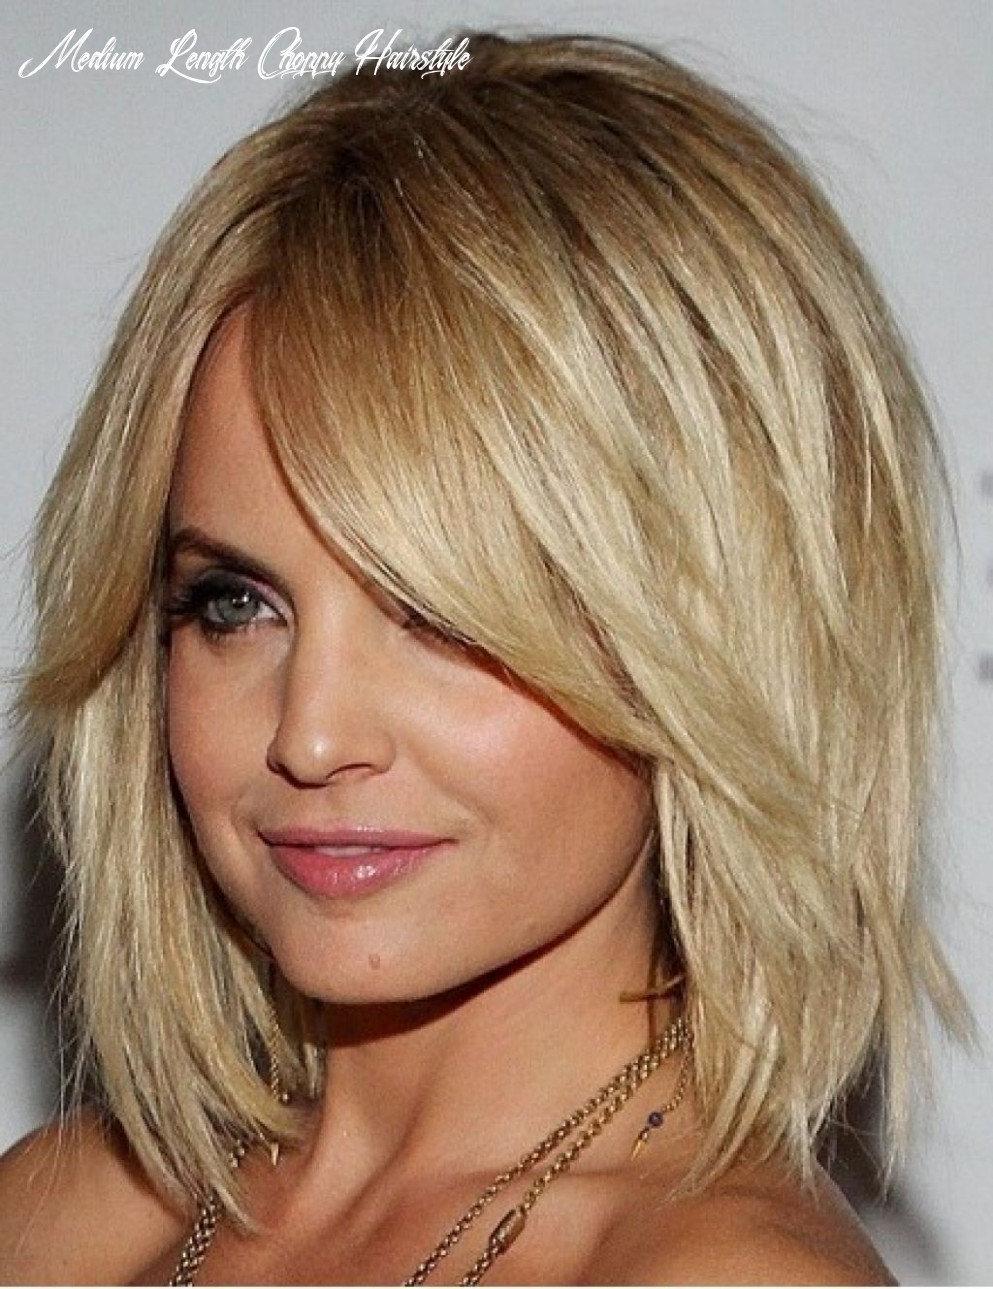 long choppy hairstyle pictures - WOW.com - Image Results   Hair ...